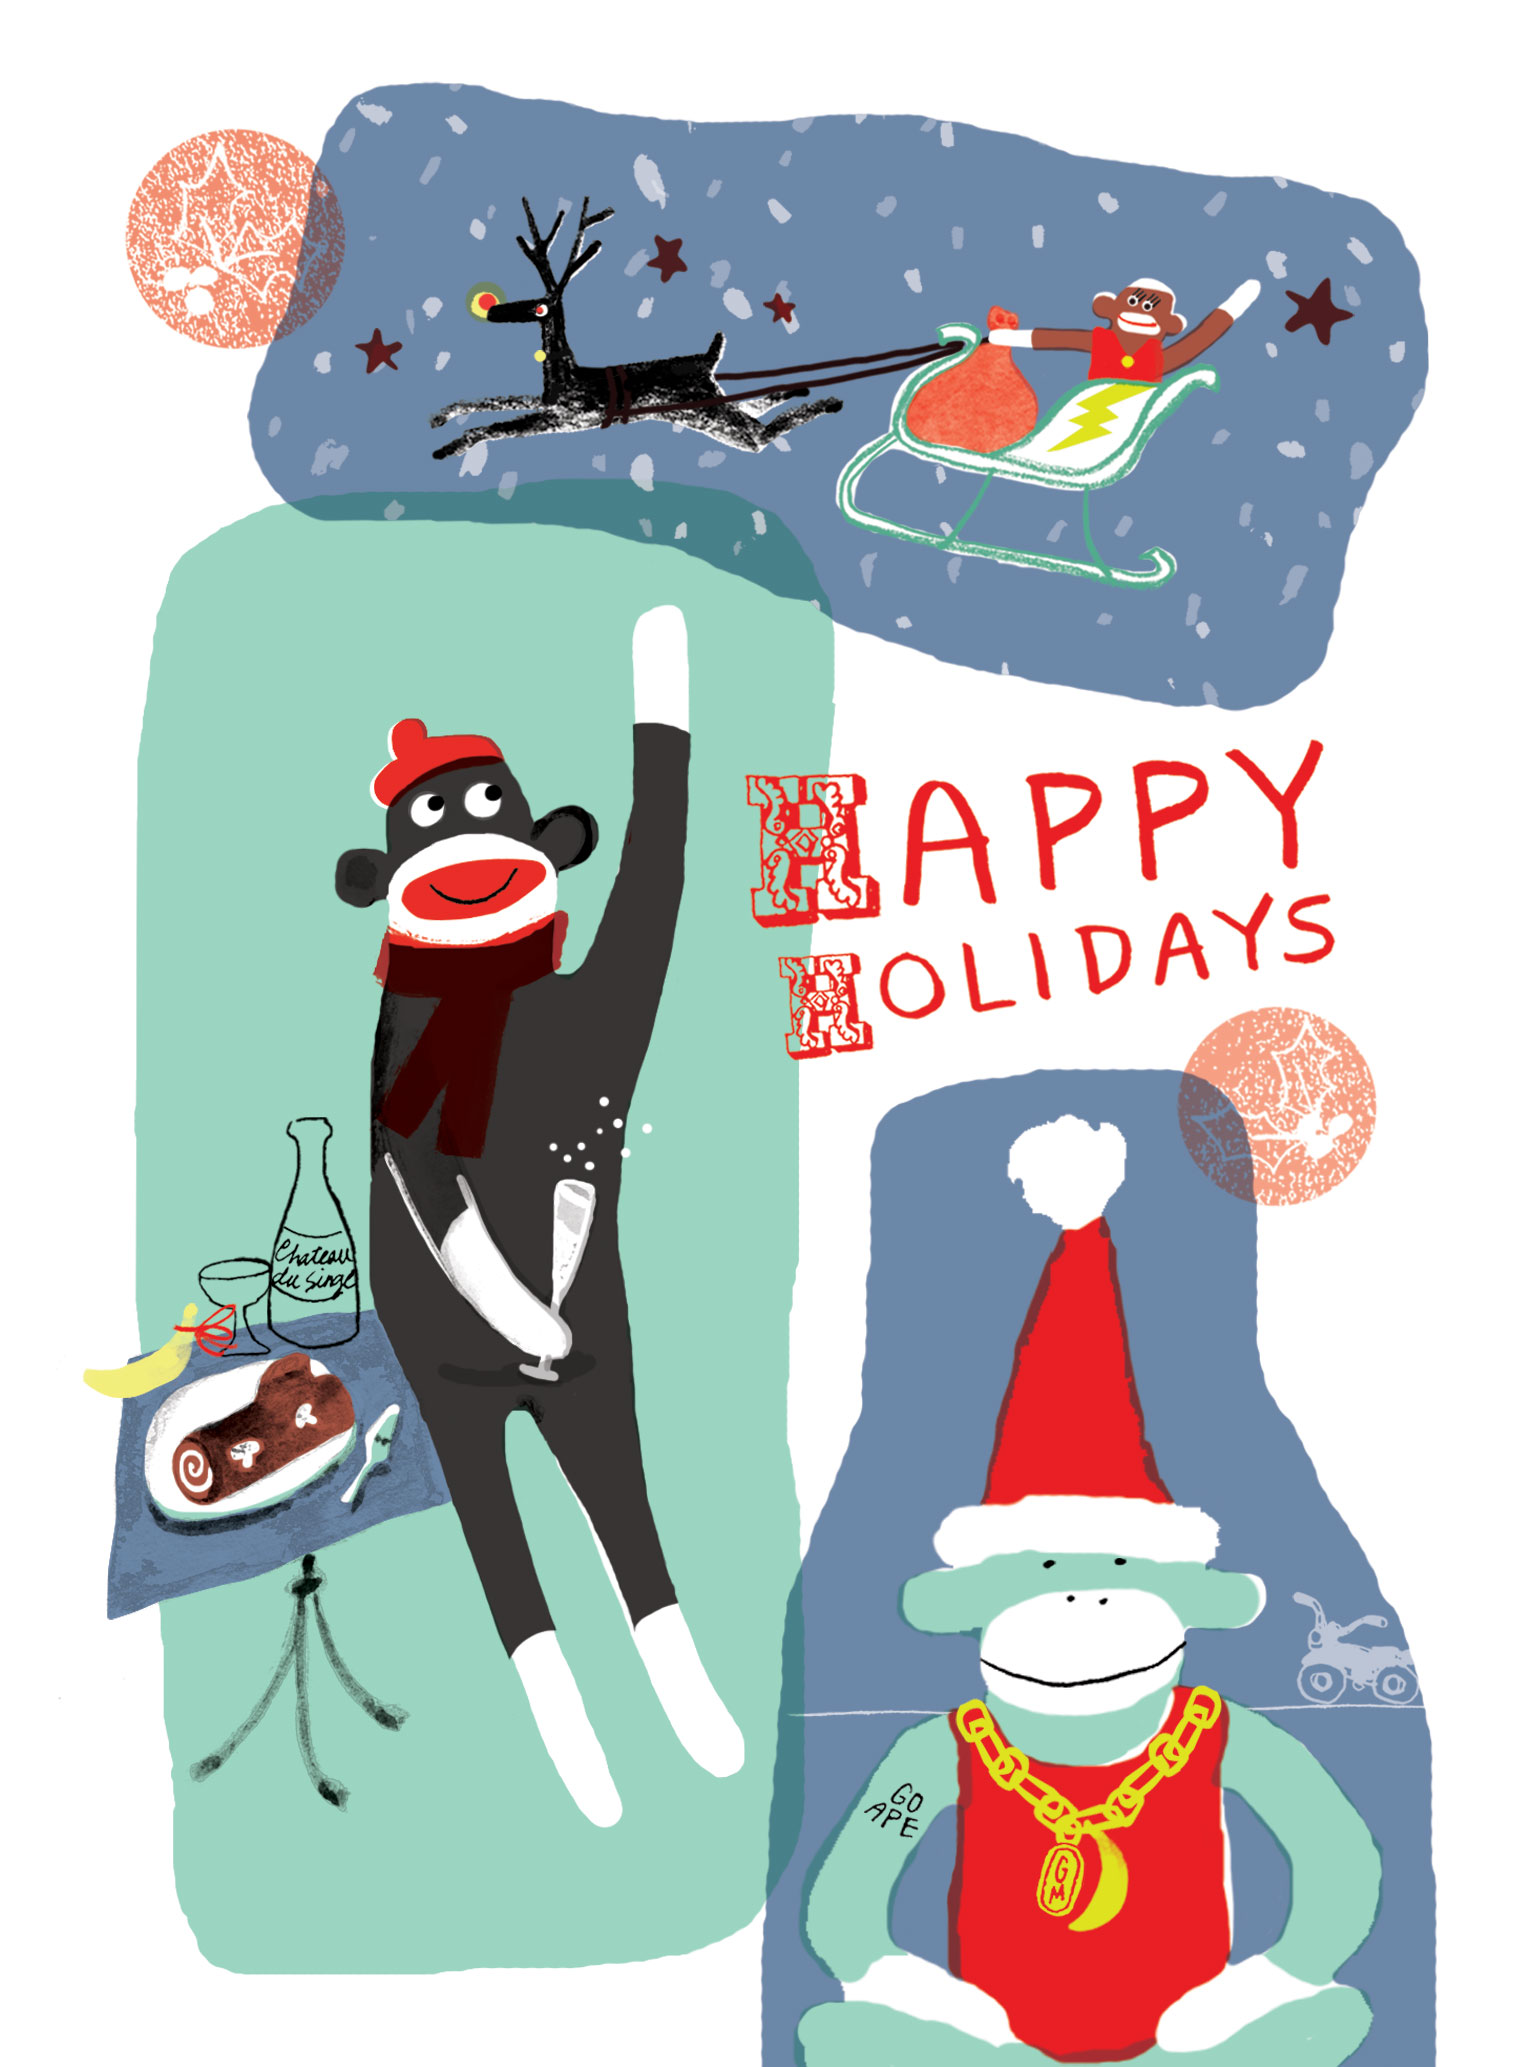 2015 Christmas Card | Sarah Wildfang